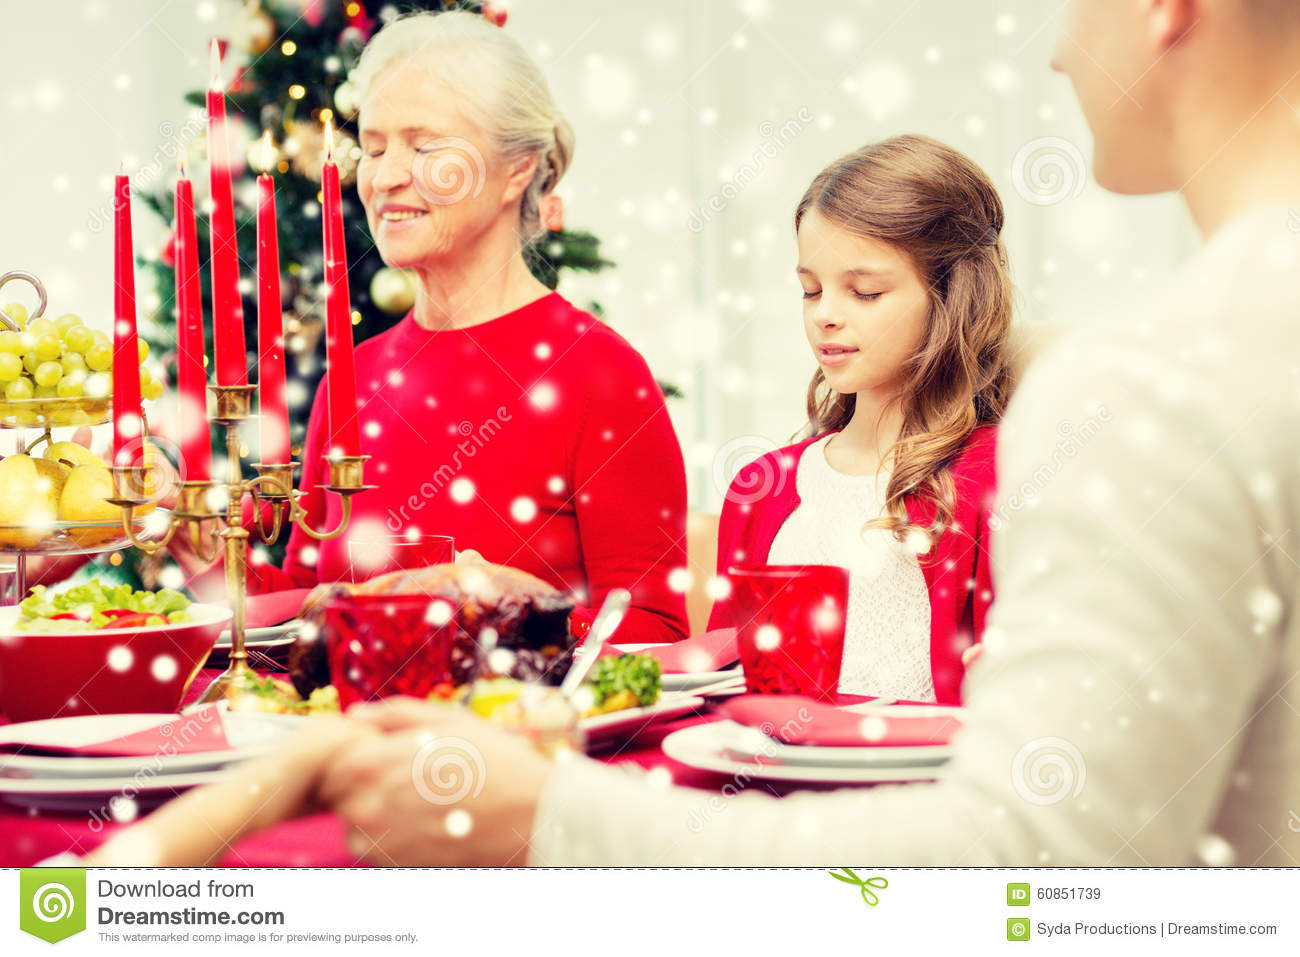 having a complete family on christmas I have a dear friend who is currently not speaking to siblings the rift was their decision, not hers, taken because she stood up for something on principle (and she was in the right) she did not want to lose the relationship over it, but their family demands complete lockstep conformity or they see it as disloyal.